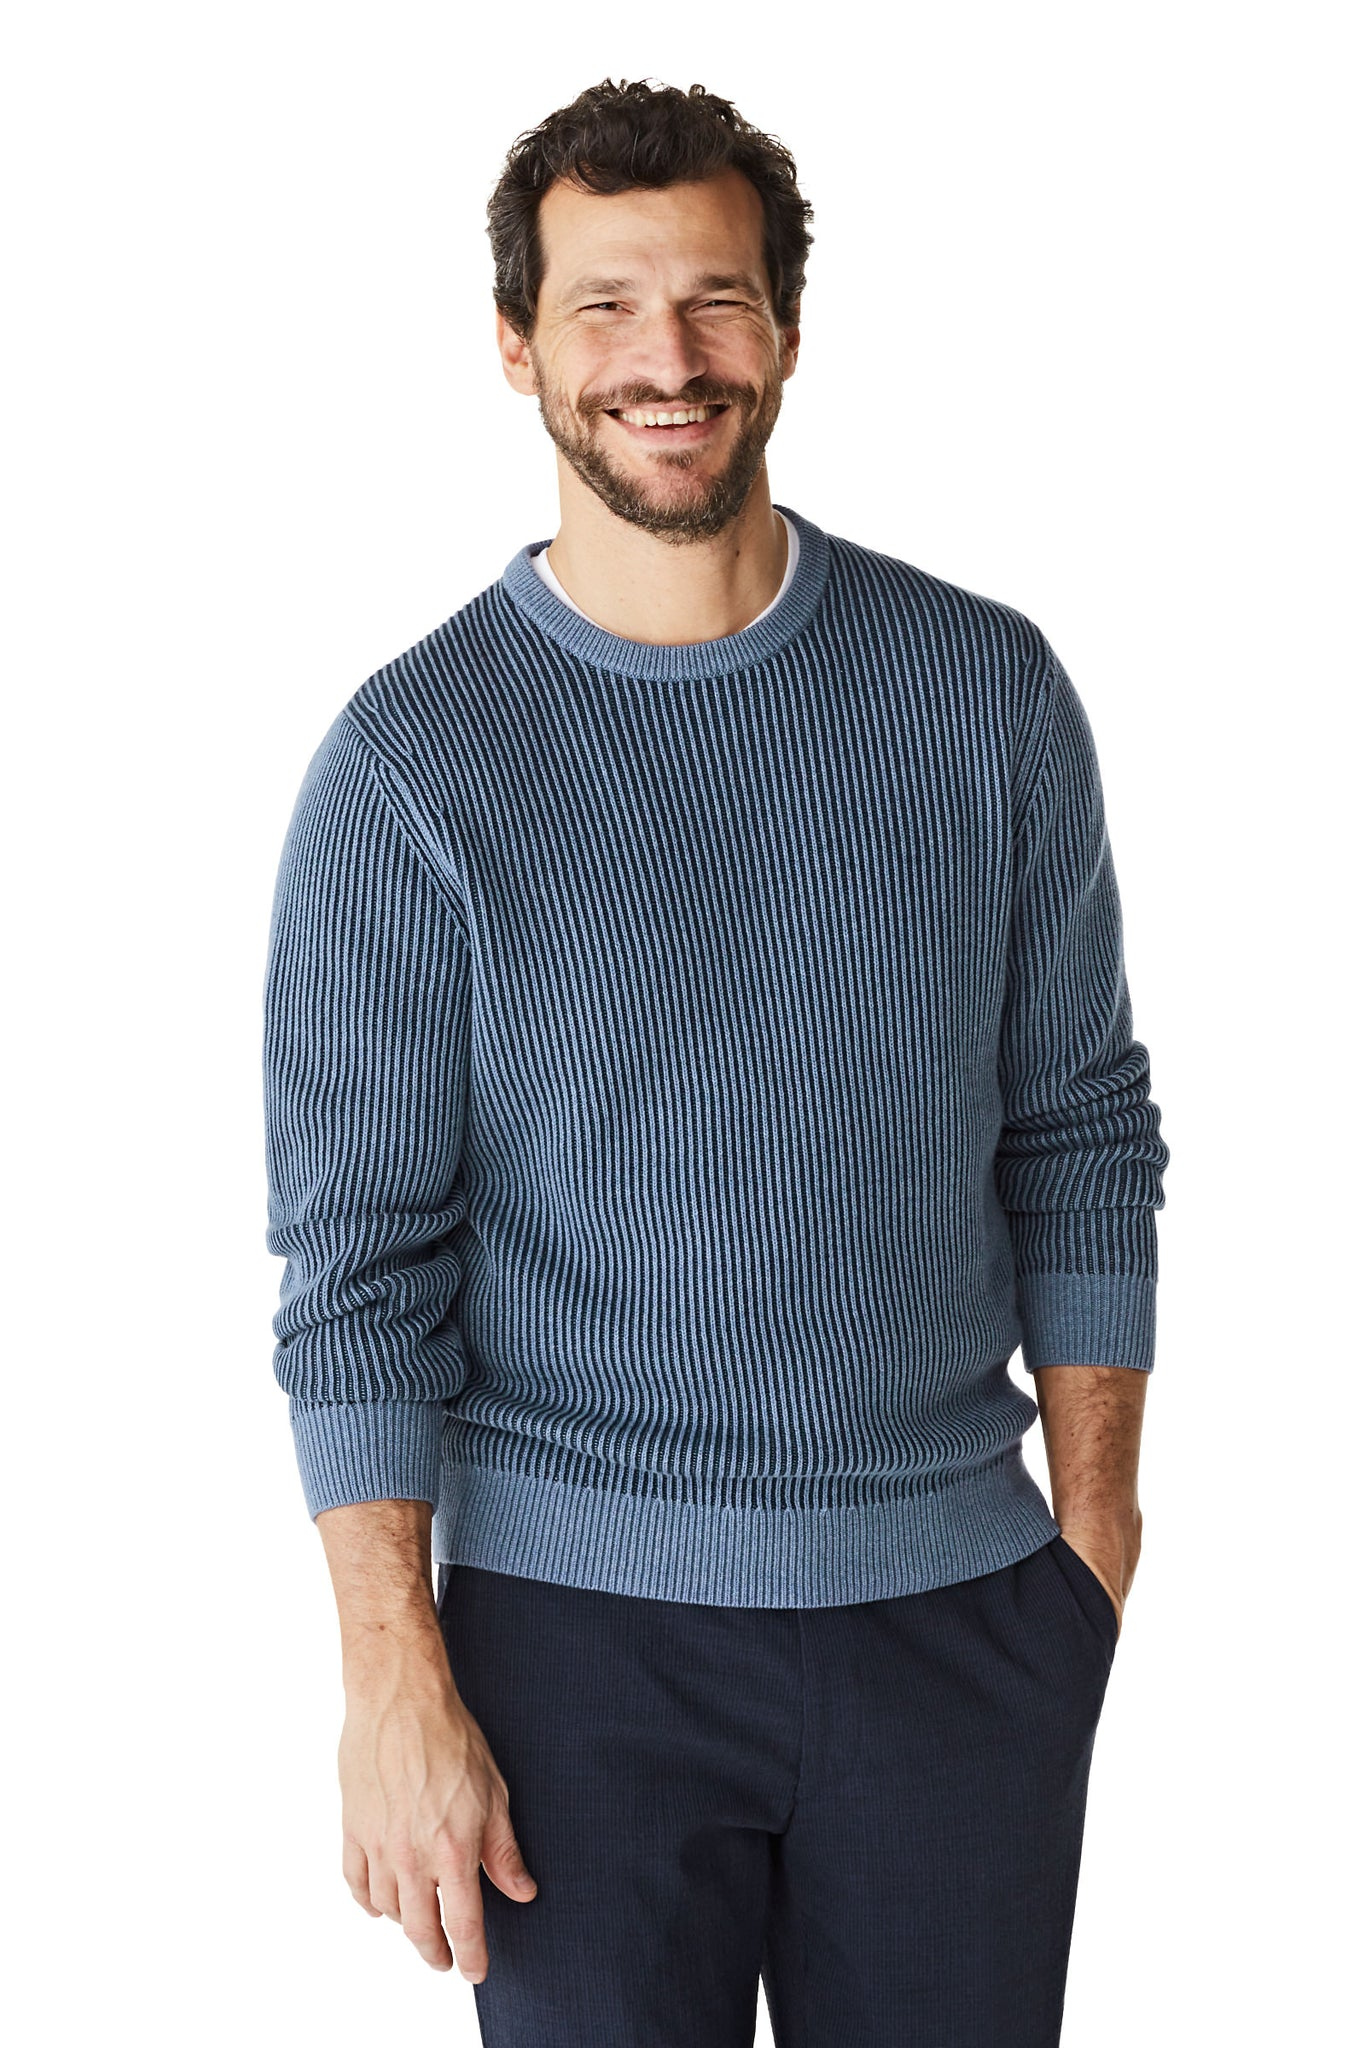 McG Chunky knit crewneck sweater cotton